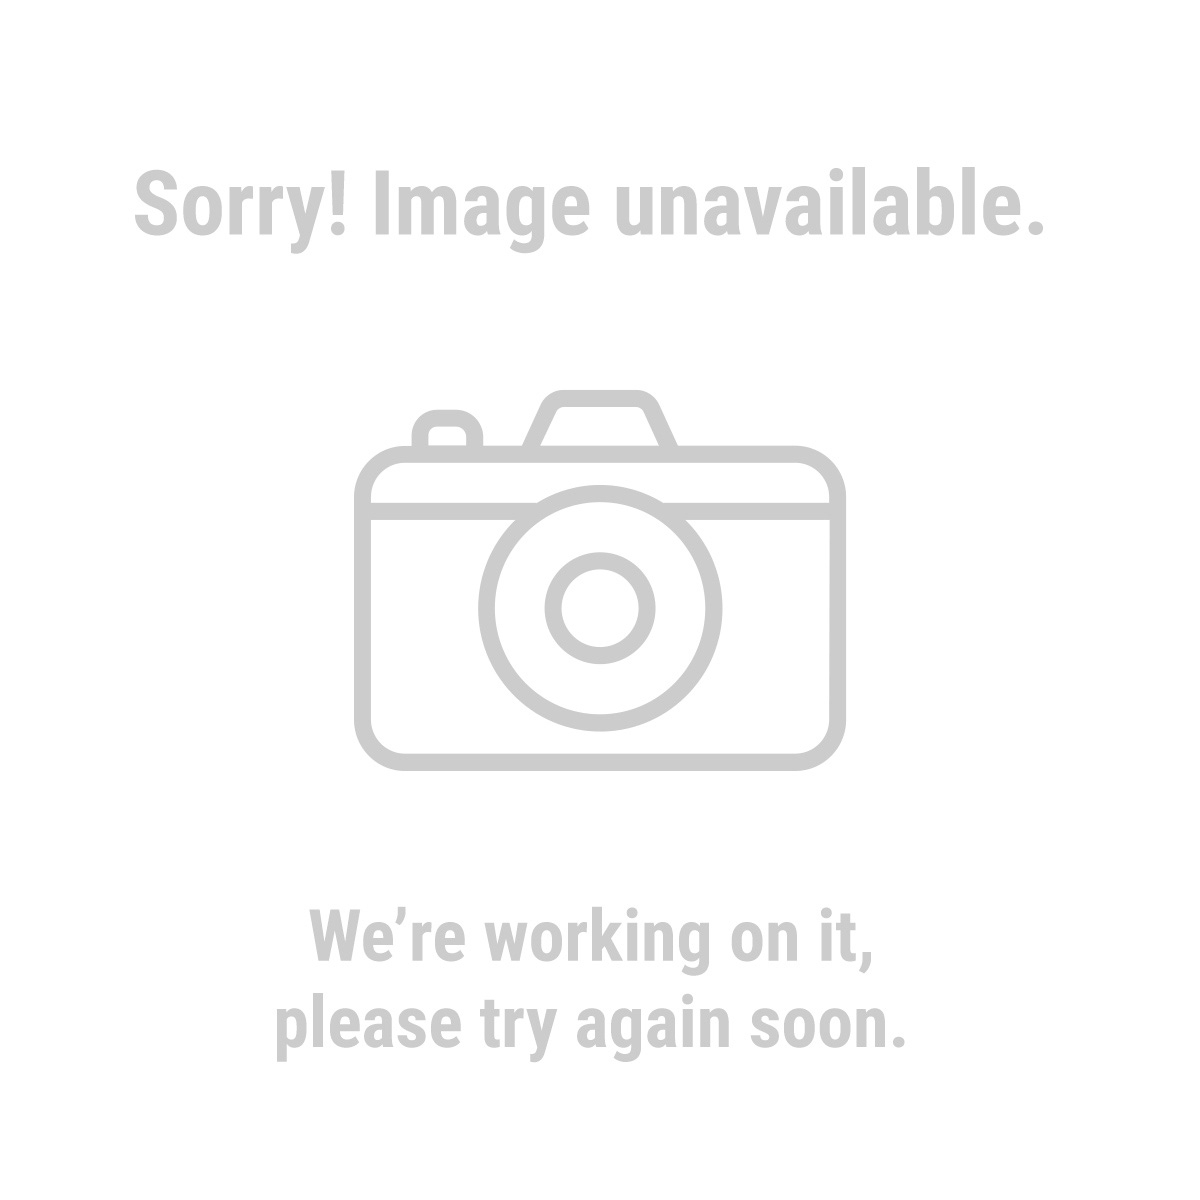 Storehouse 65889 Wall Mounted Storage Bins